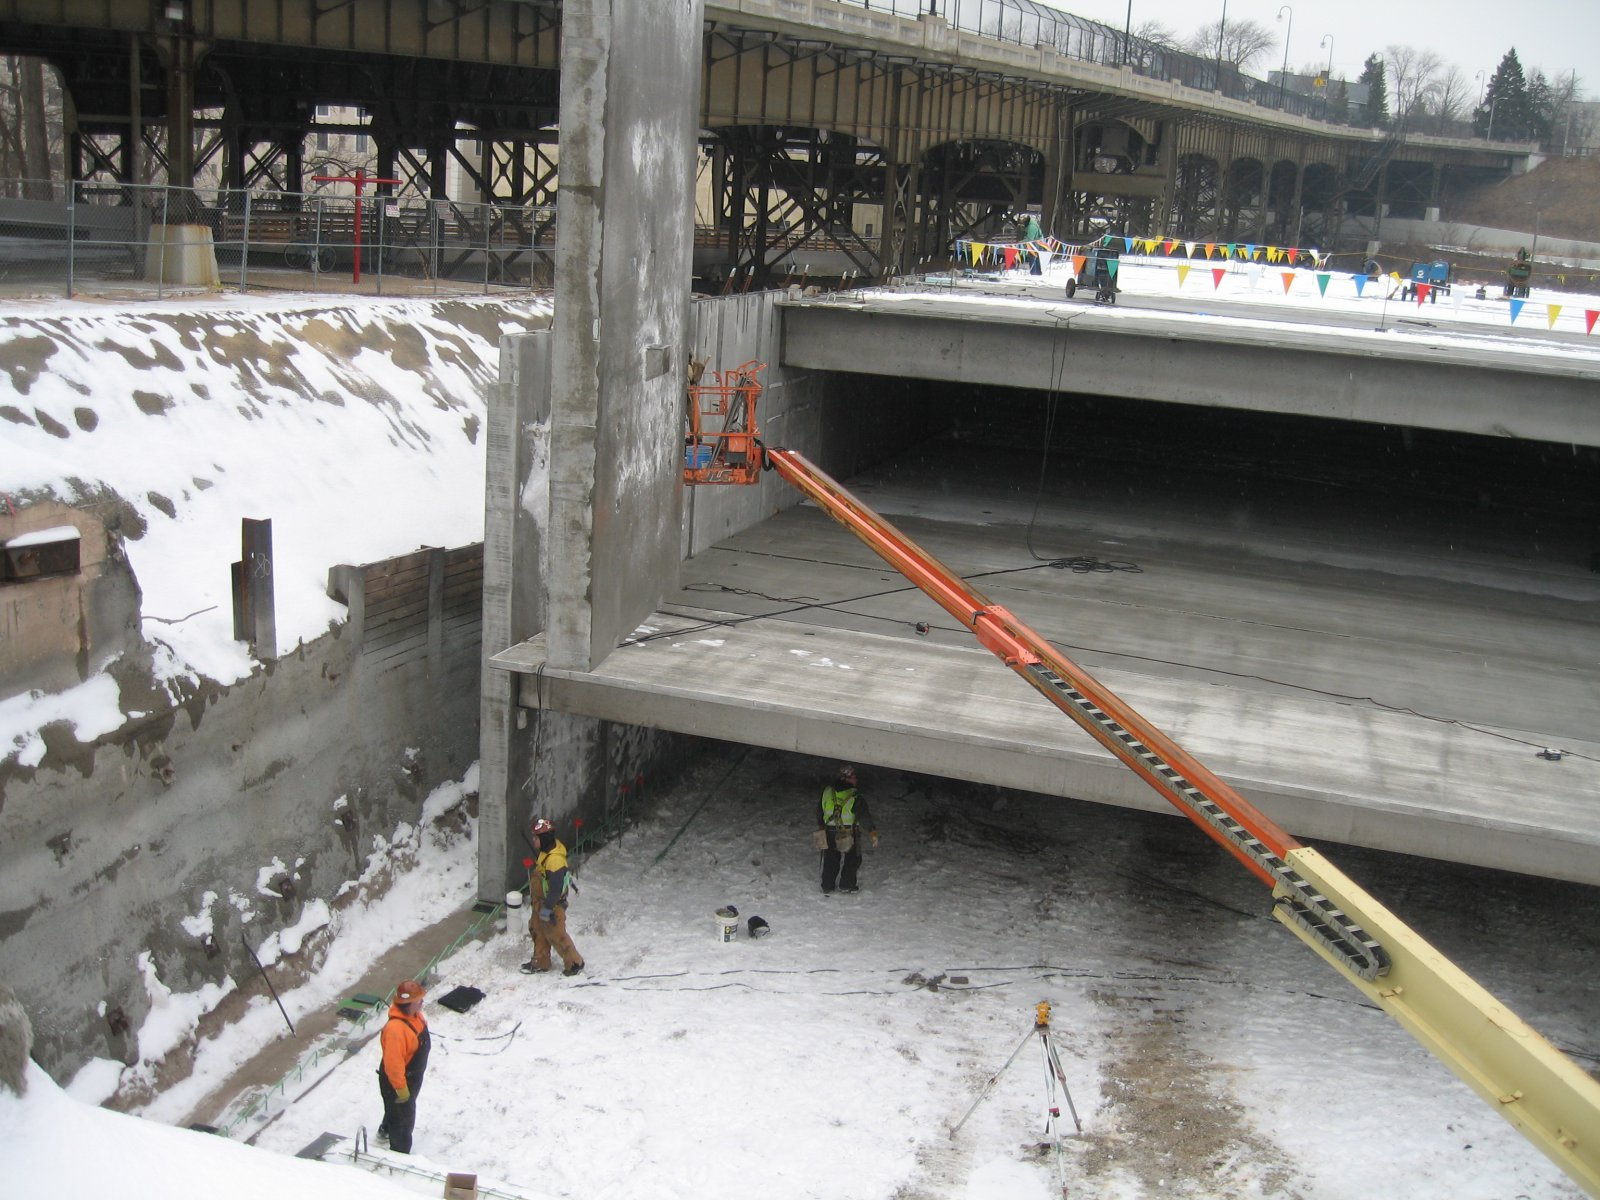 Precast concrete panel being lifted into place